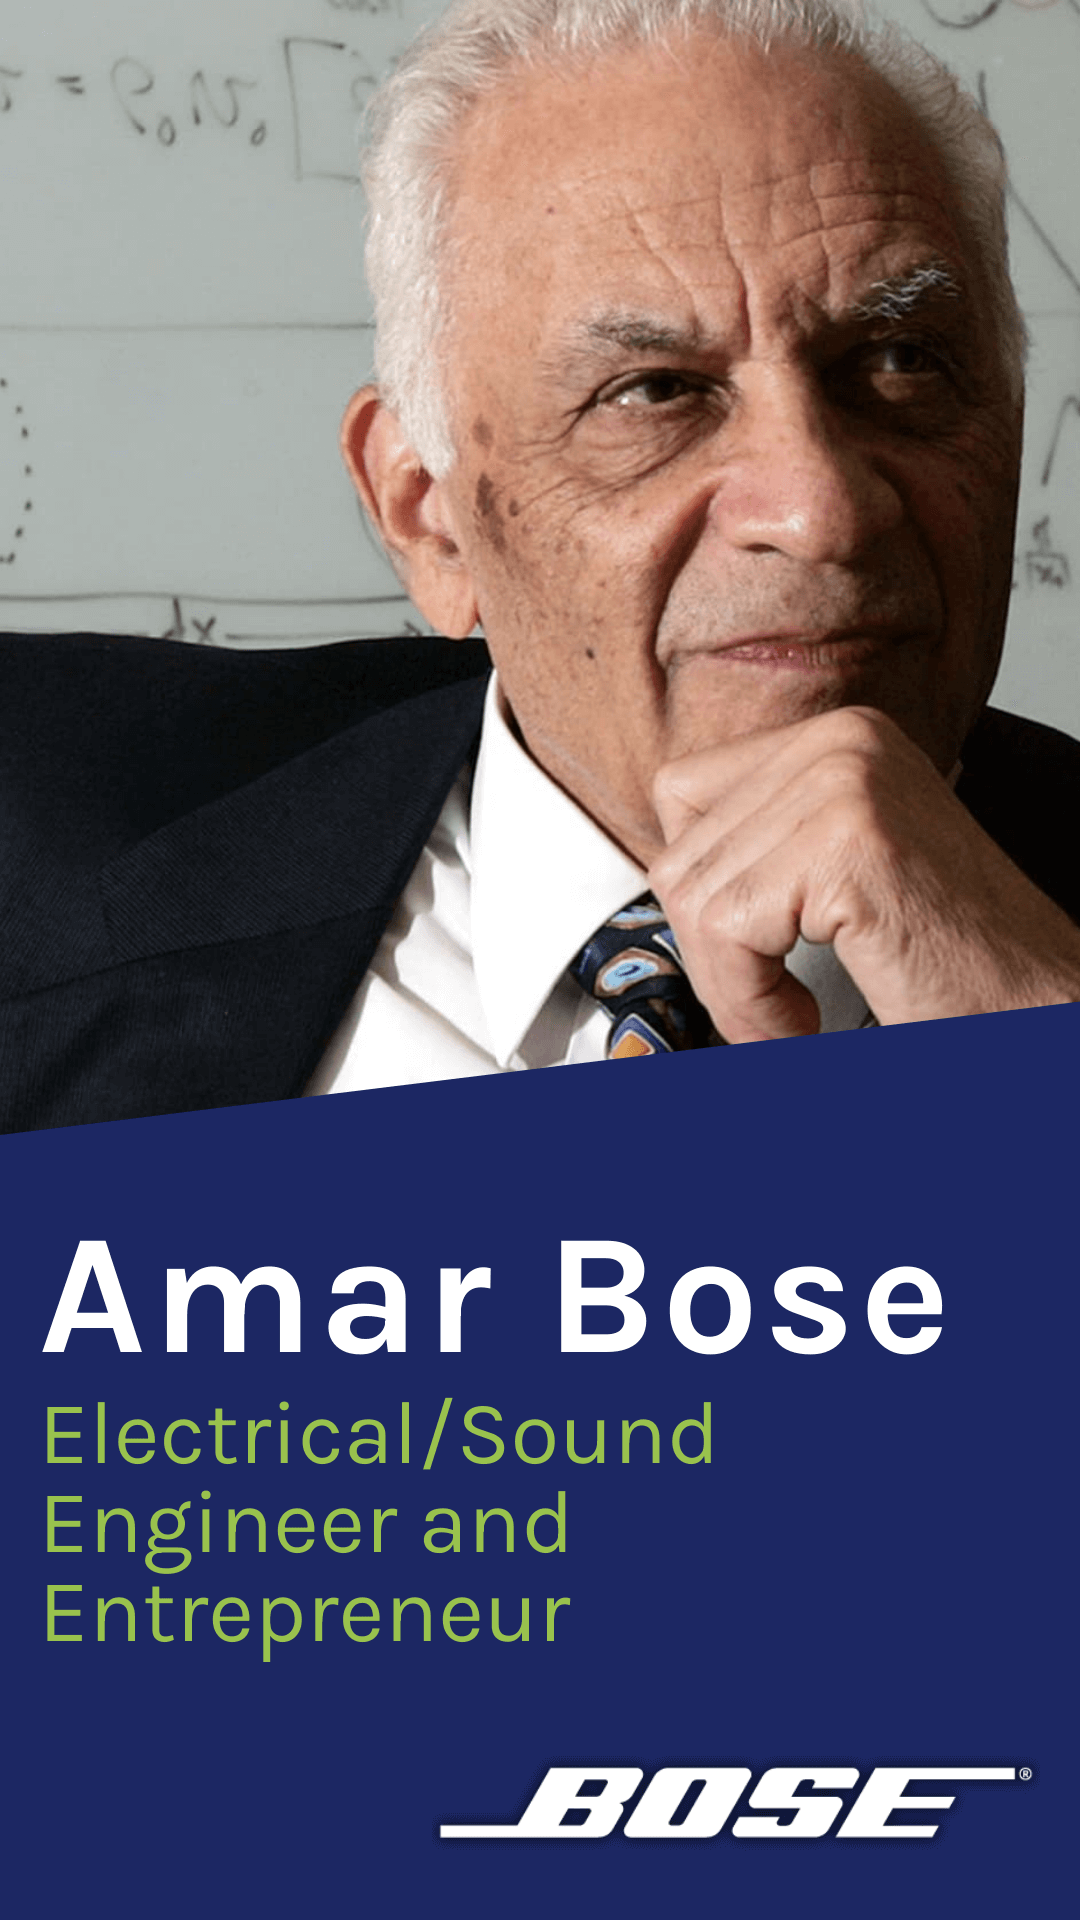 Amar Bose, Founder, Chairman and technical Director of Bose Corporation